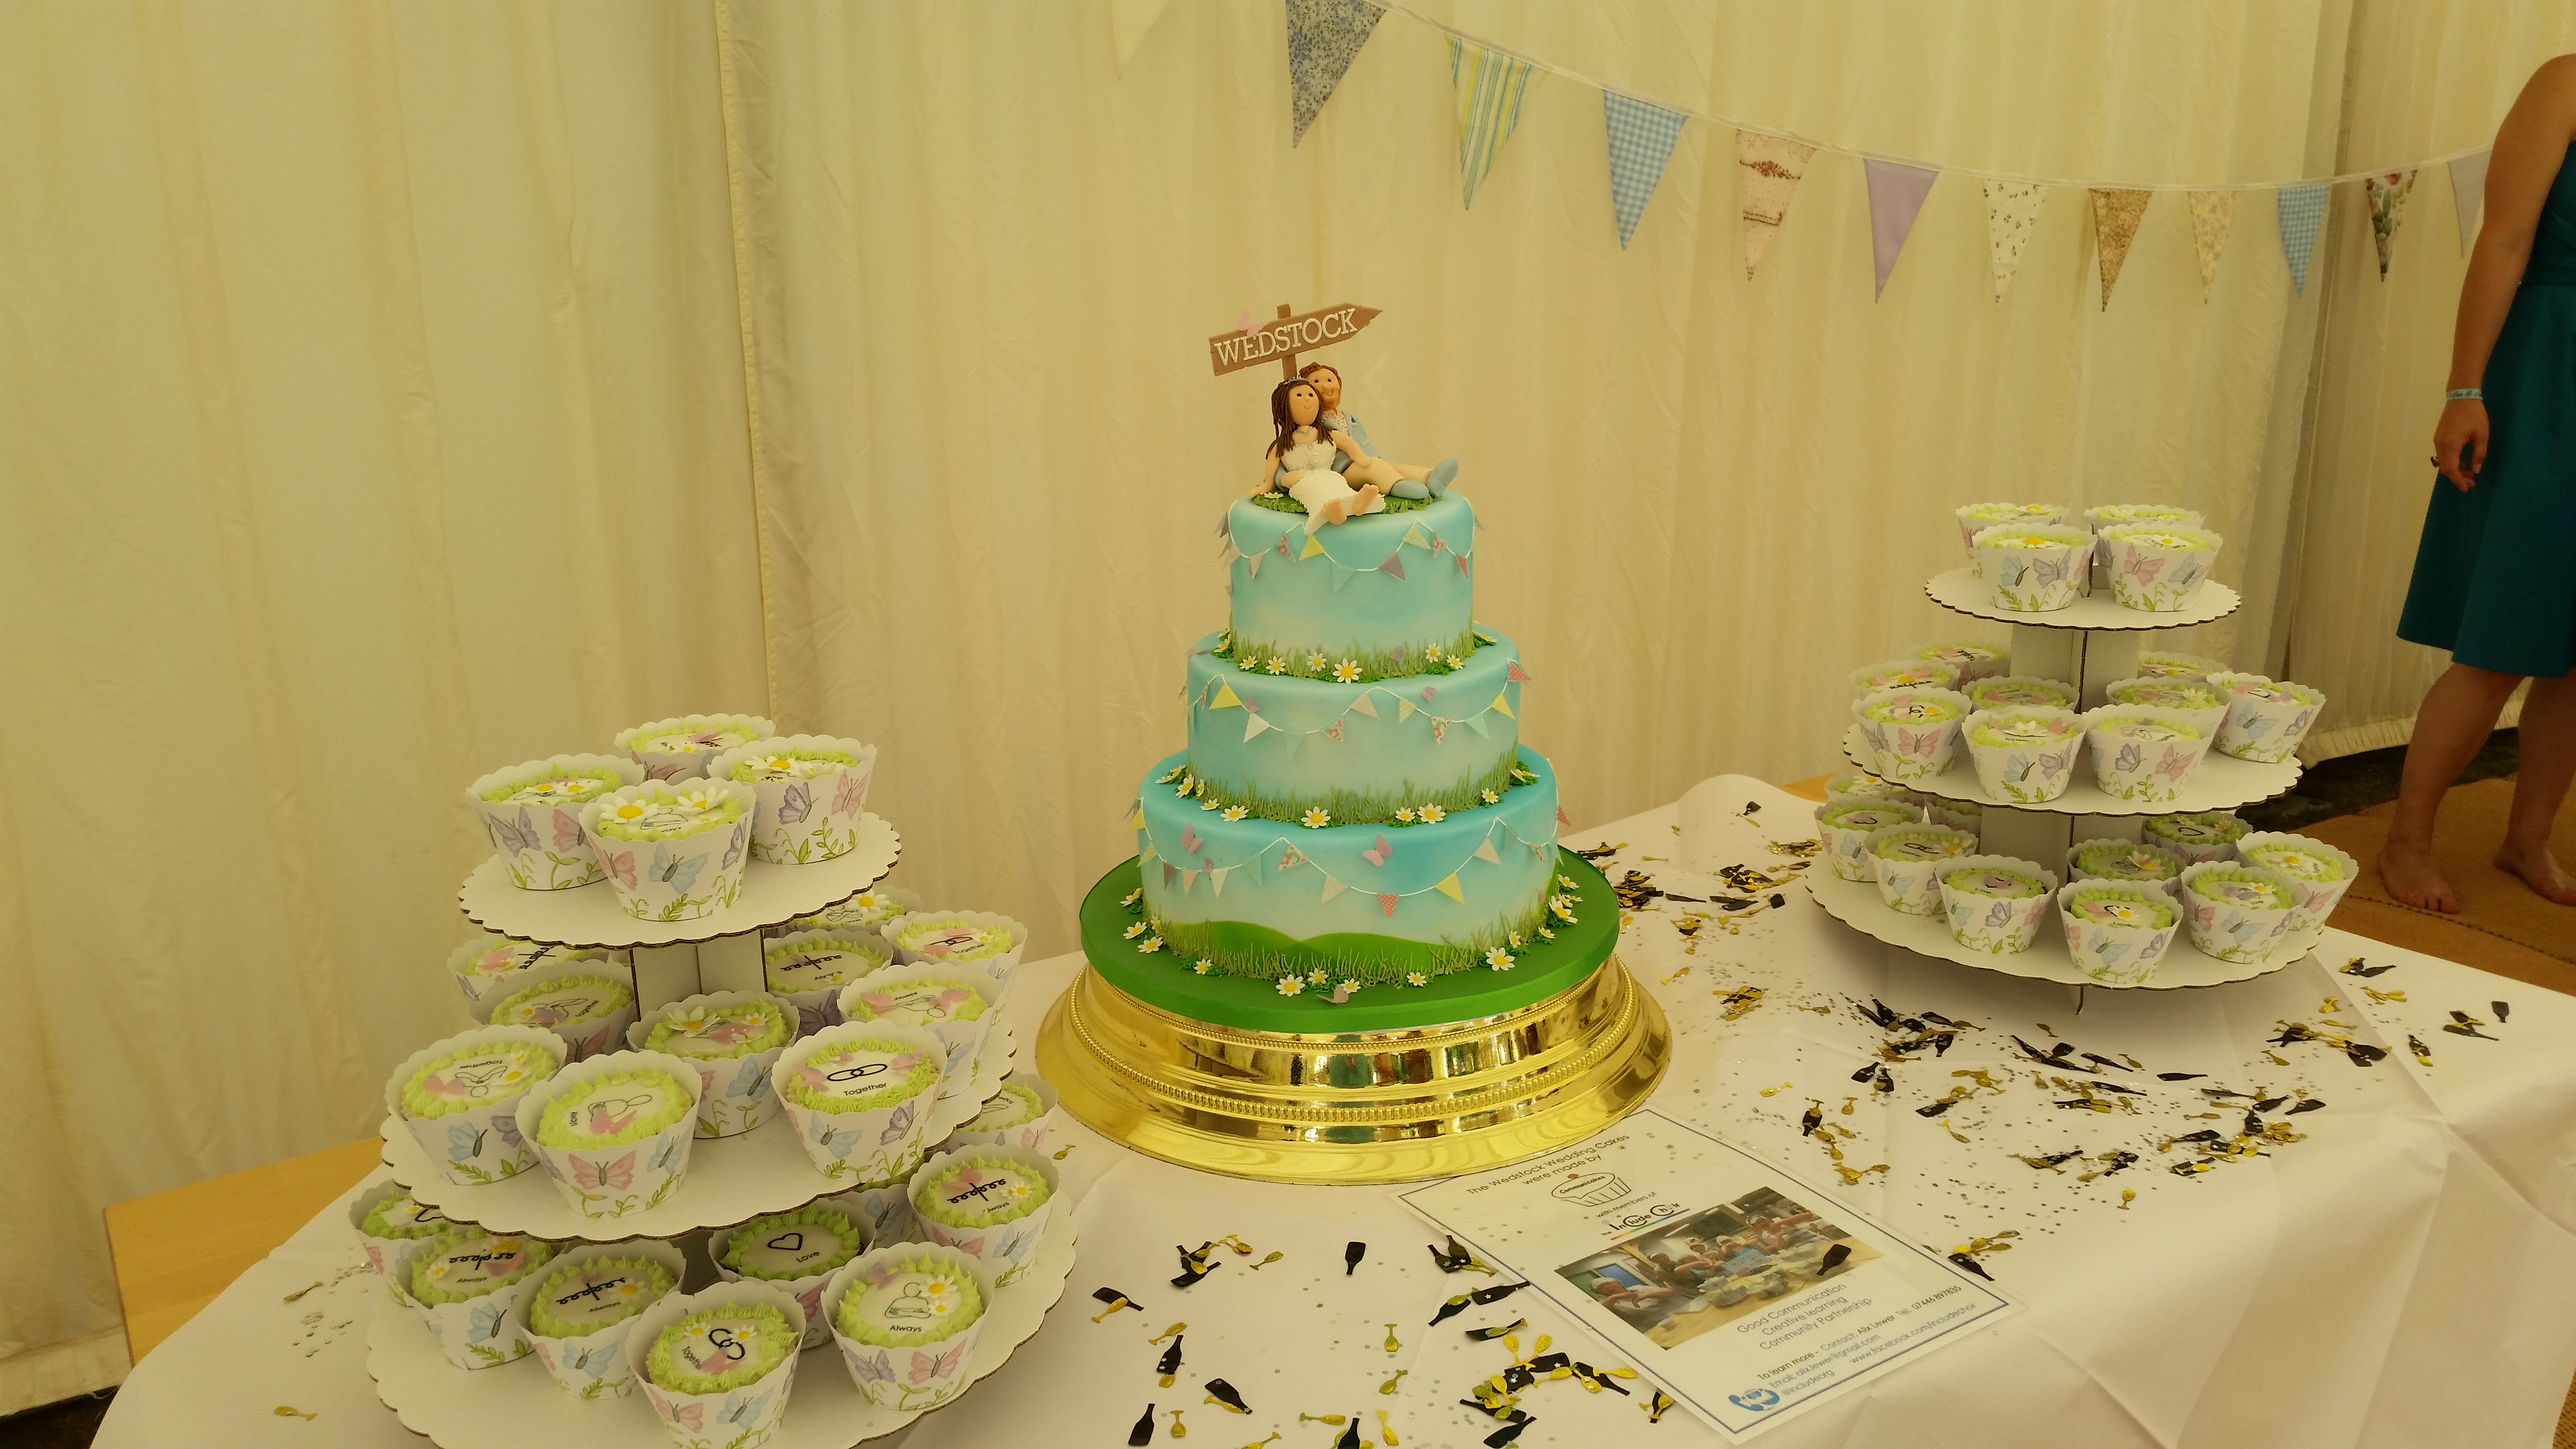 Completed wedding cake and cupcakes from Wedstock